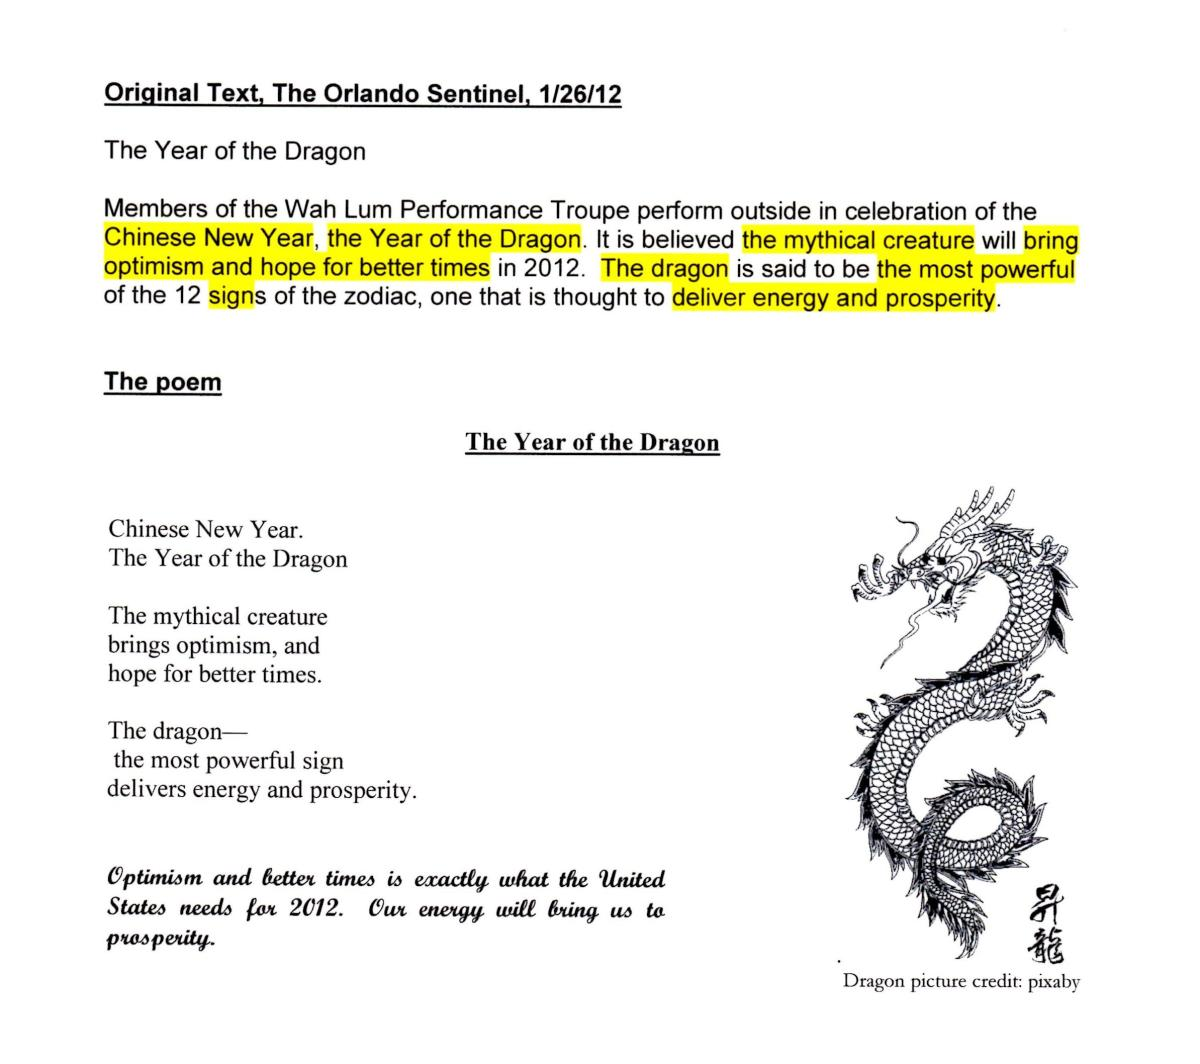 A news print poem about a Chinese dragon.